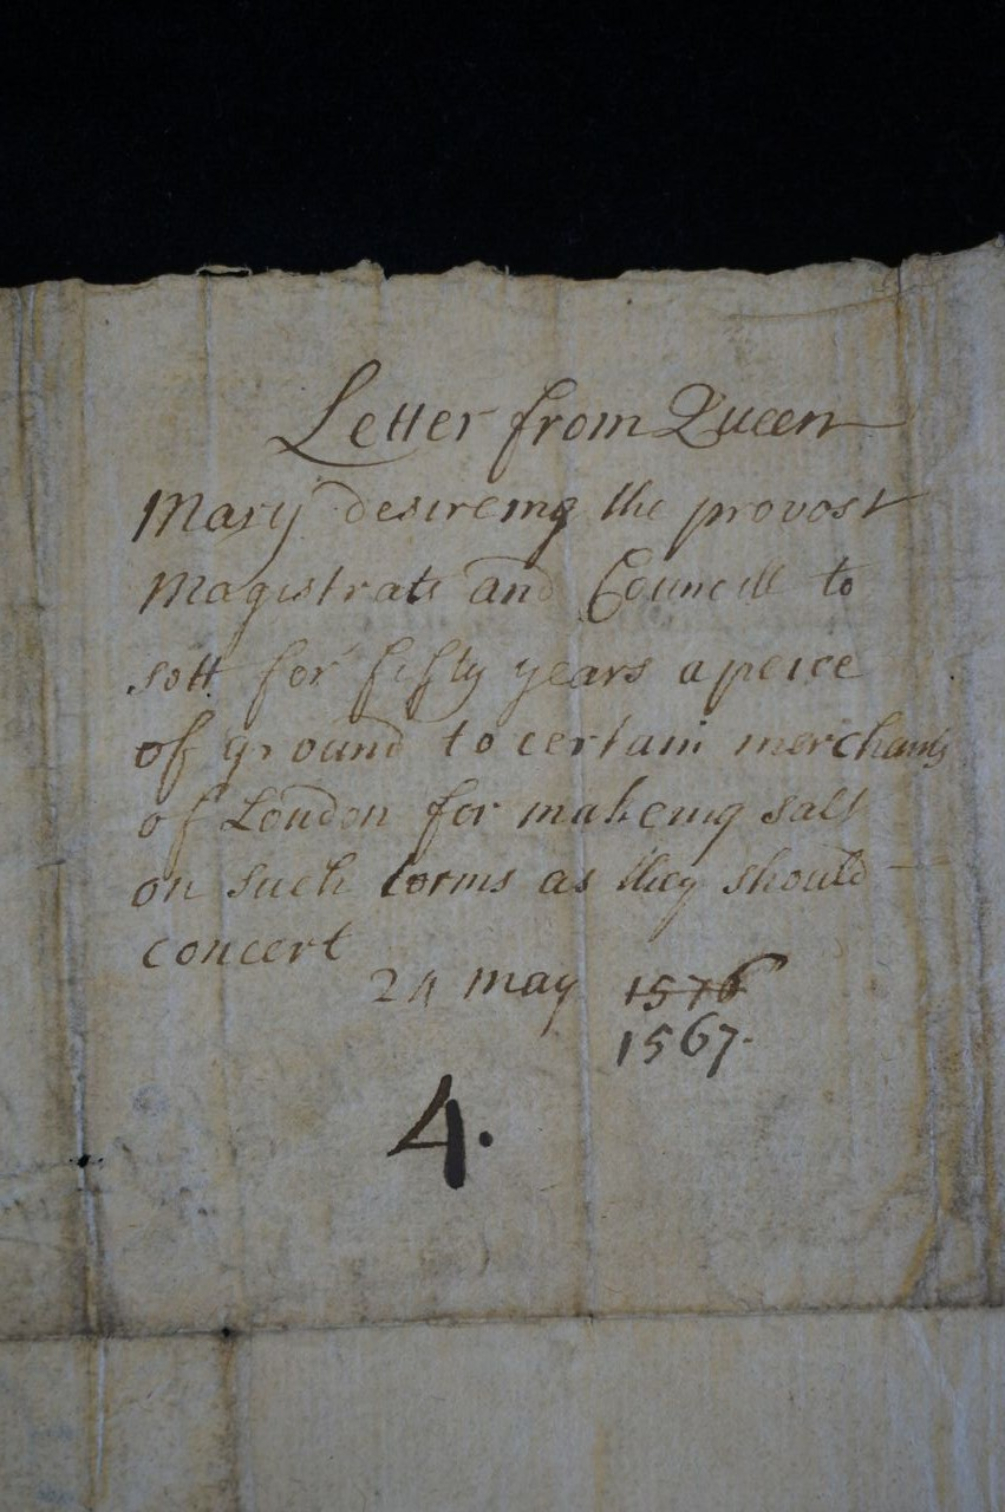 Letter from Mary Queen of Scots